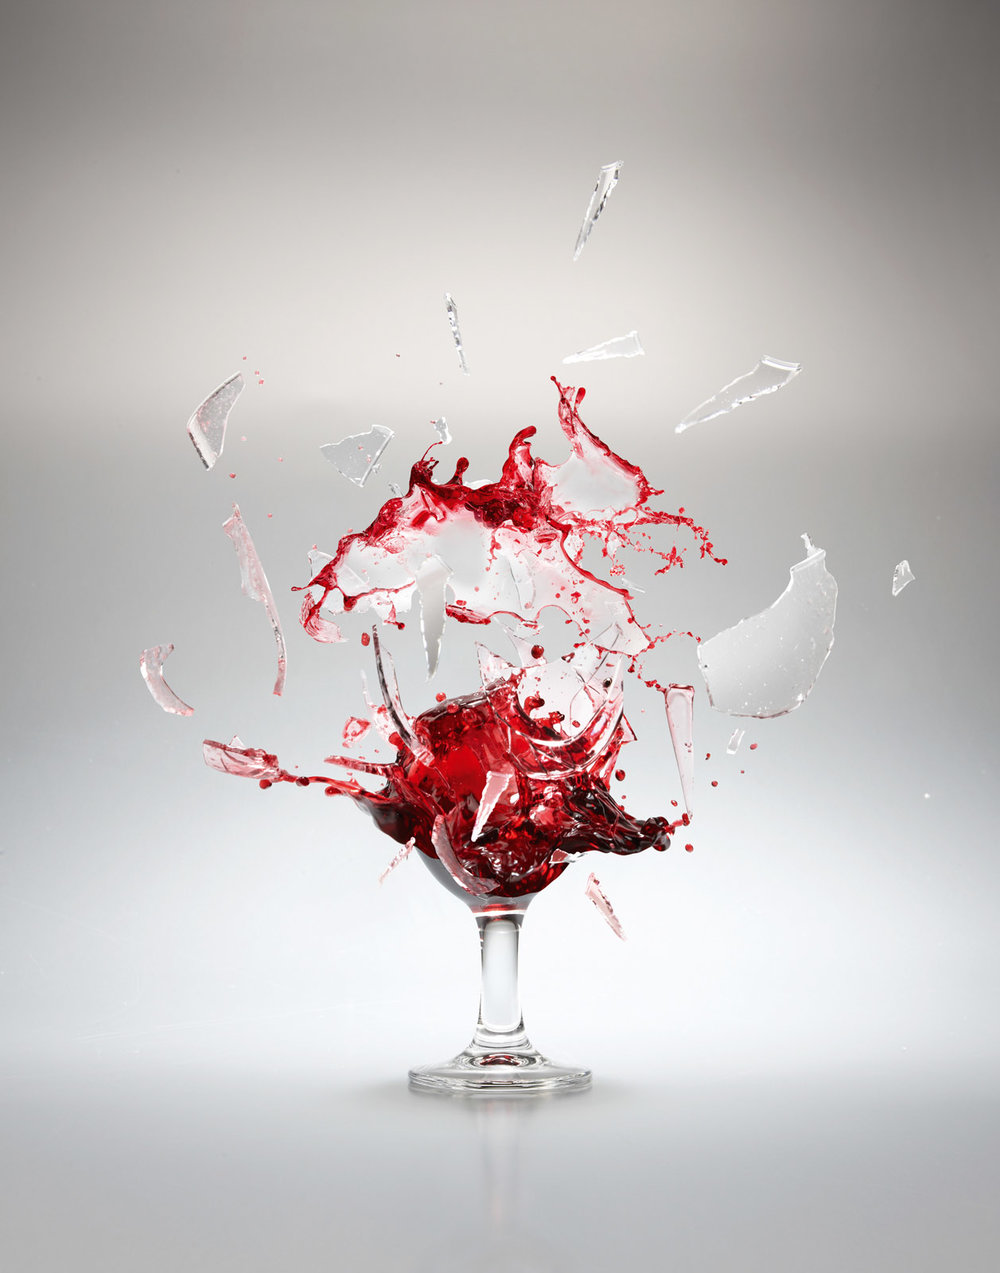 bursting wine glass.jpg